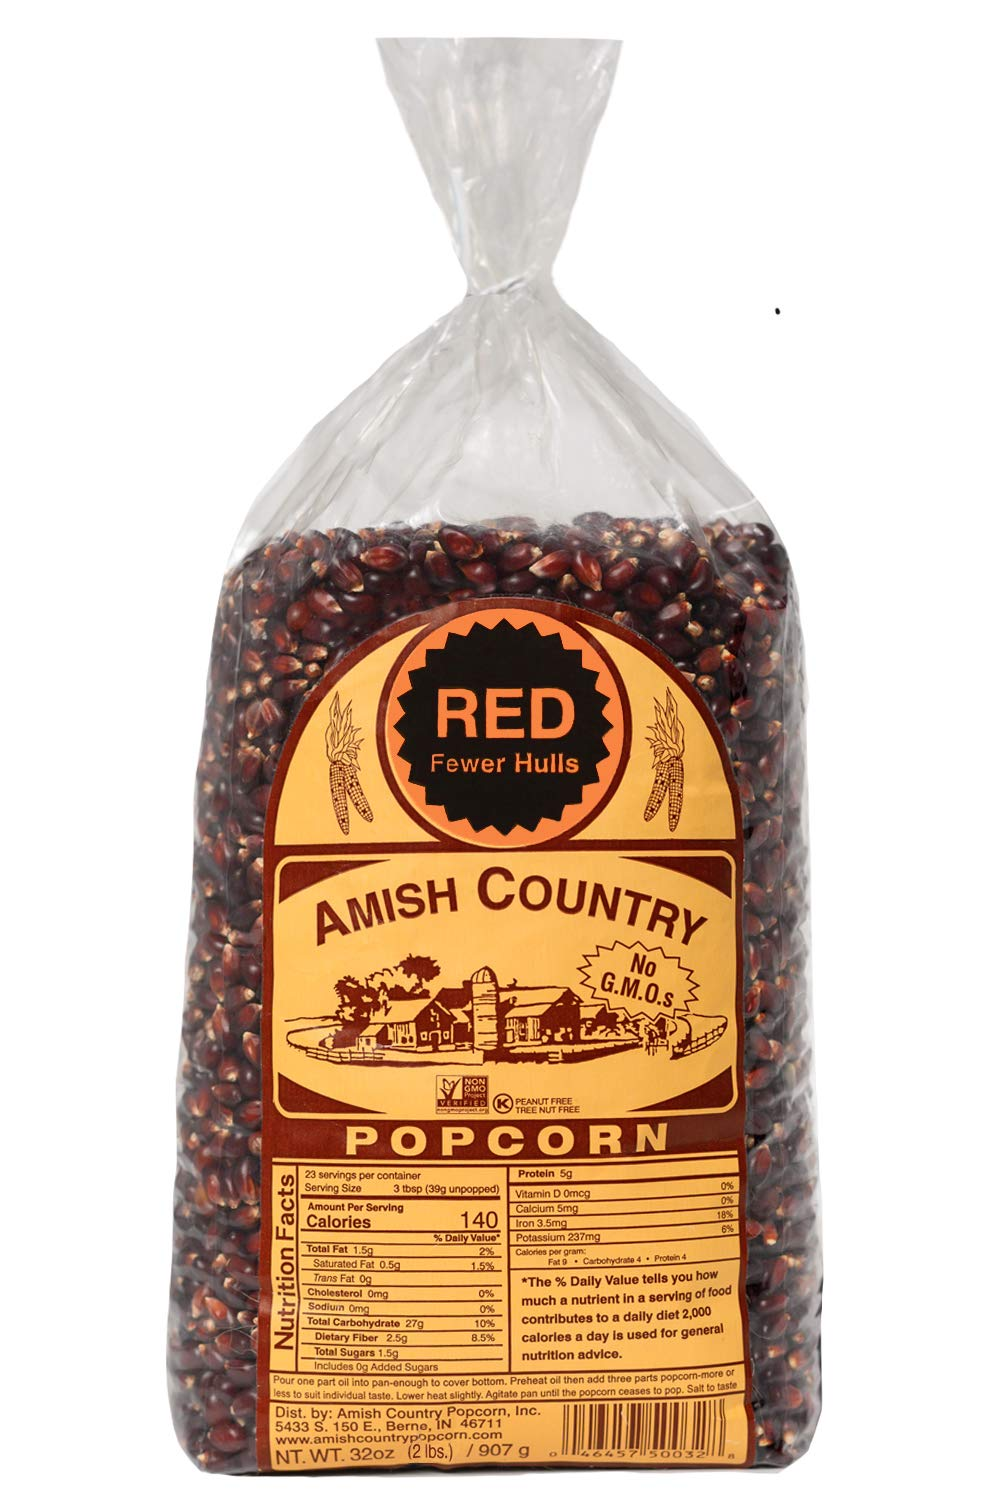 Amish Country Popcorn - Red Kernels (2 Pound Bag) - Old Fashioned, Non GMO, and Gluten Free - with Recipe Guide by Amish Country Popcorn